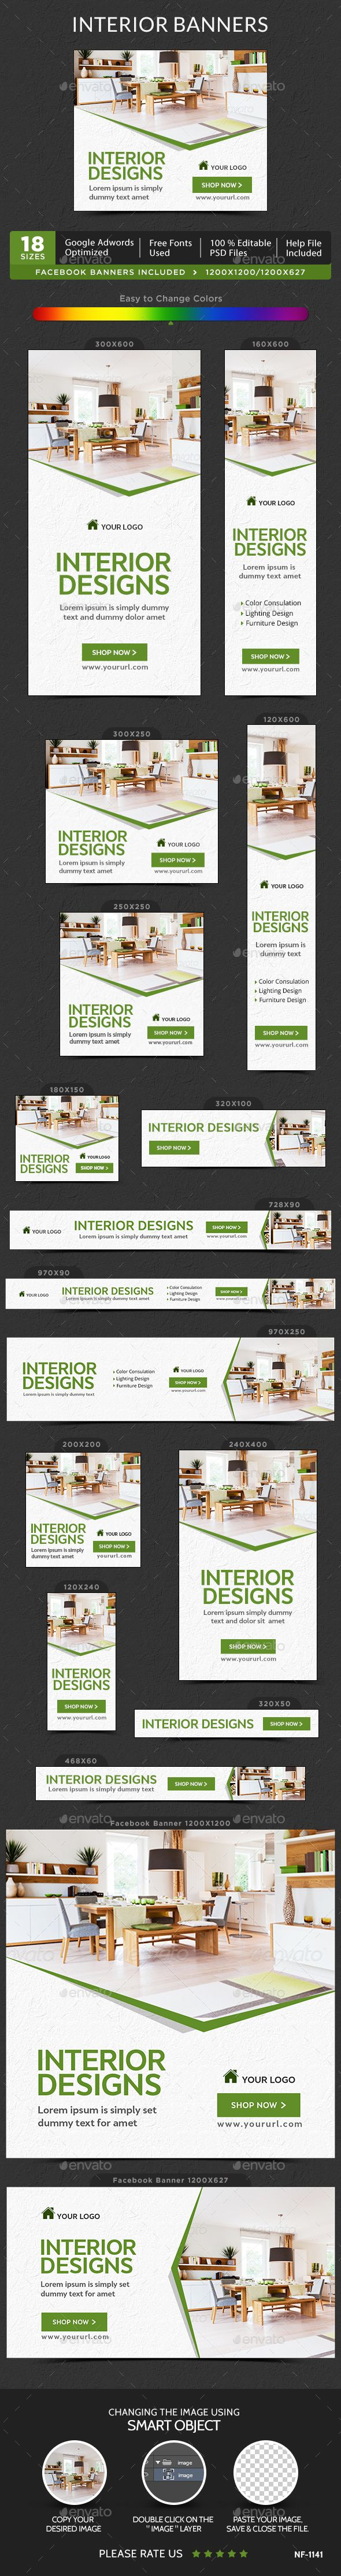 Interior Web Banners Template PSD. Download here: http://graphicriver.net/item/interior-banners/15123024?ref=ksioks